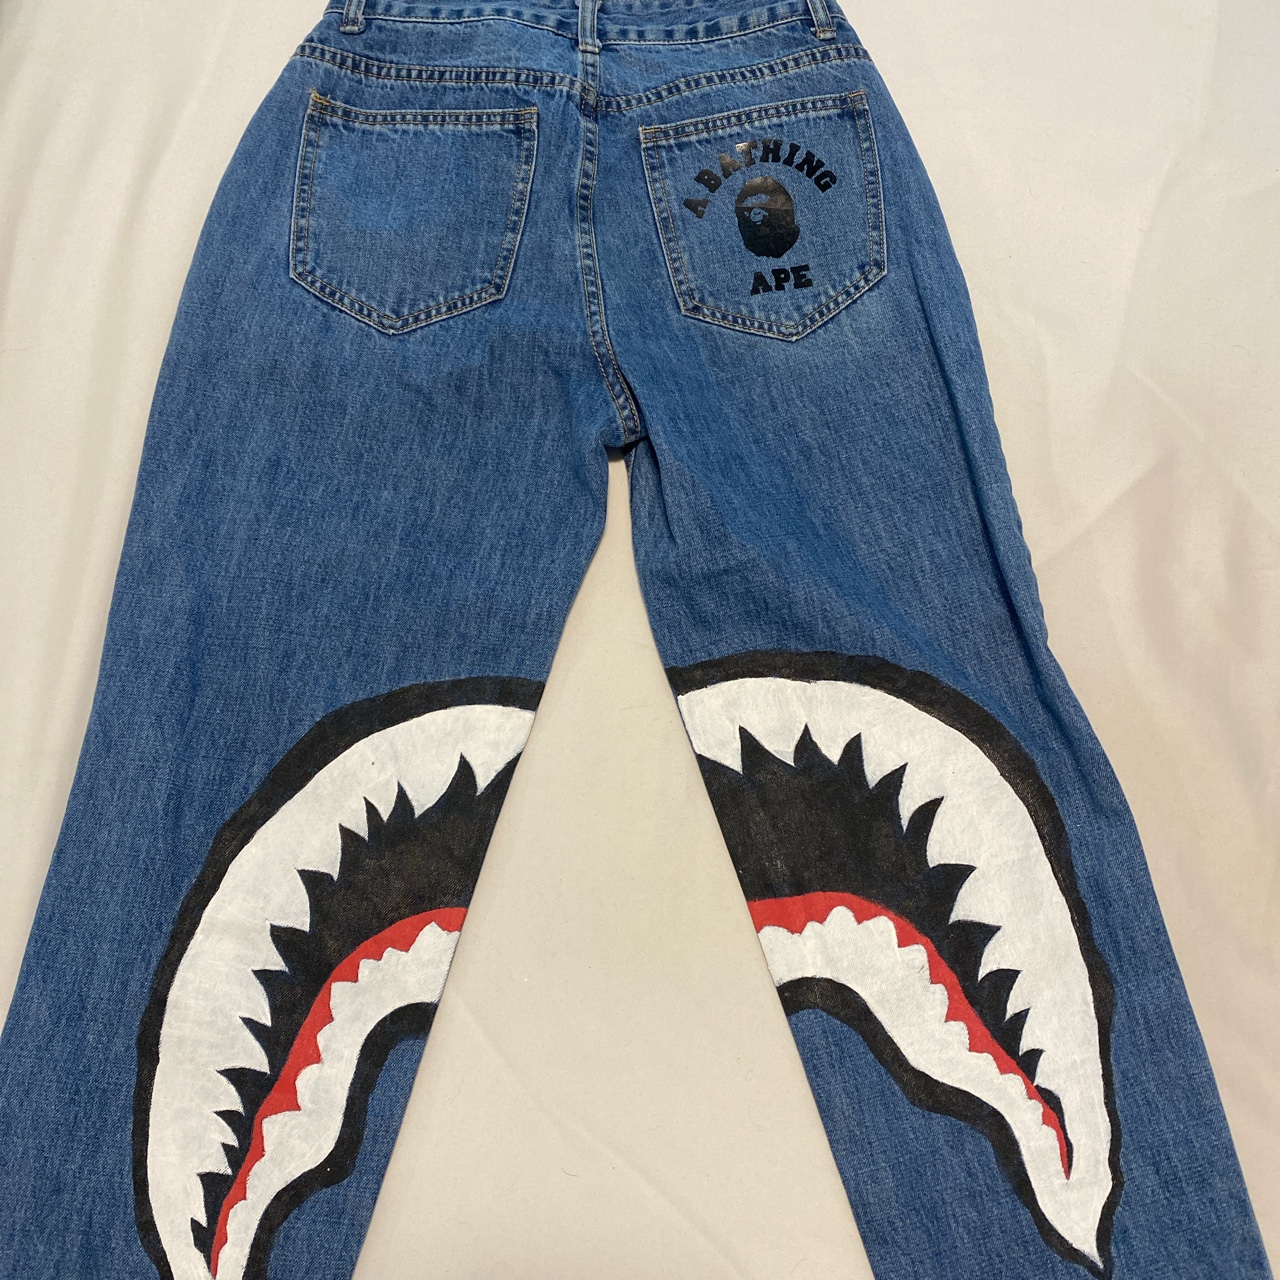 Product Image 1 - bape inspired jeans, hand painted,